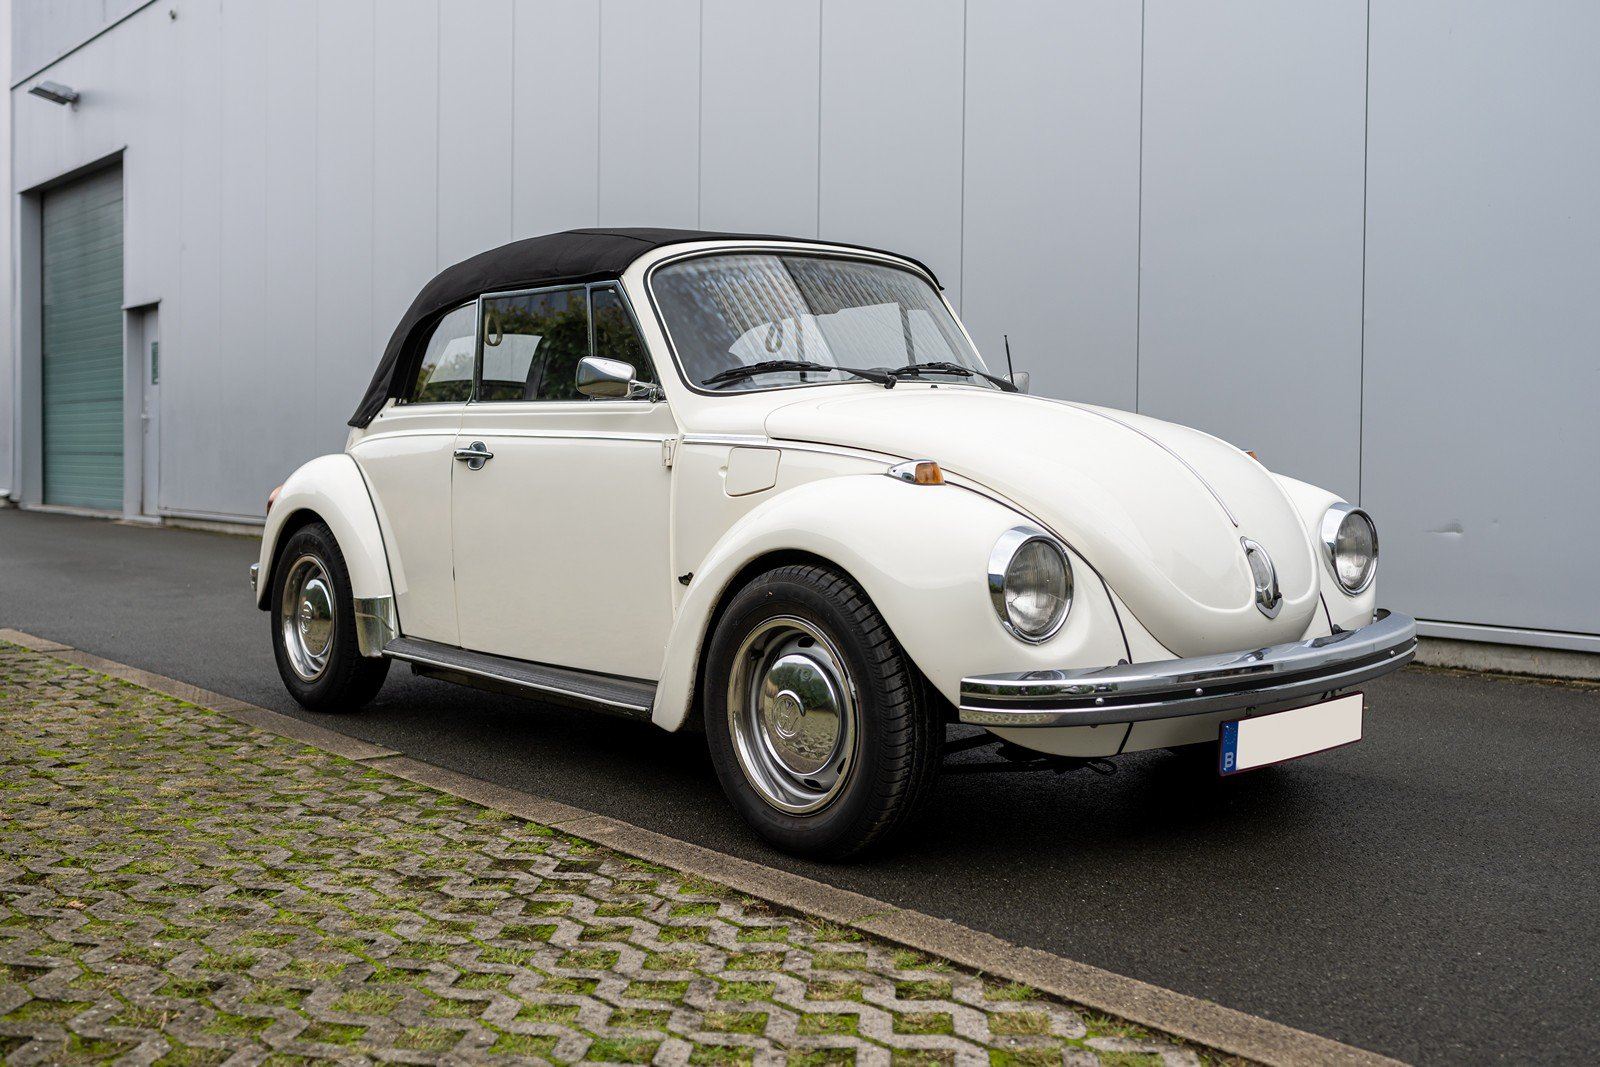 1973 Volkswagen Beetle Type 1303 Cabriolet For Sale (picture 1 of 39)